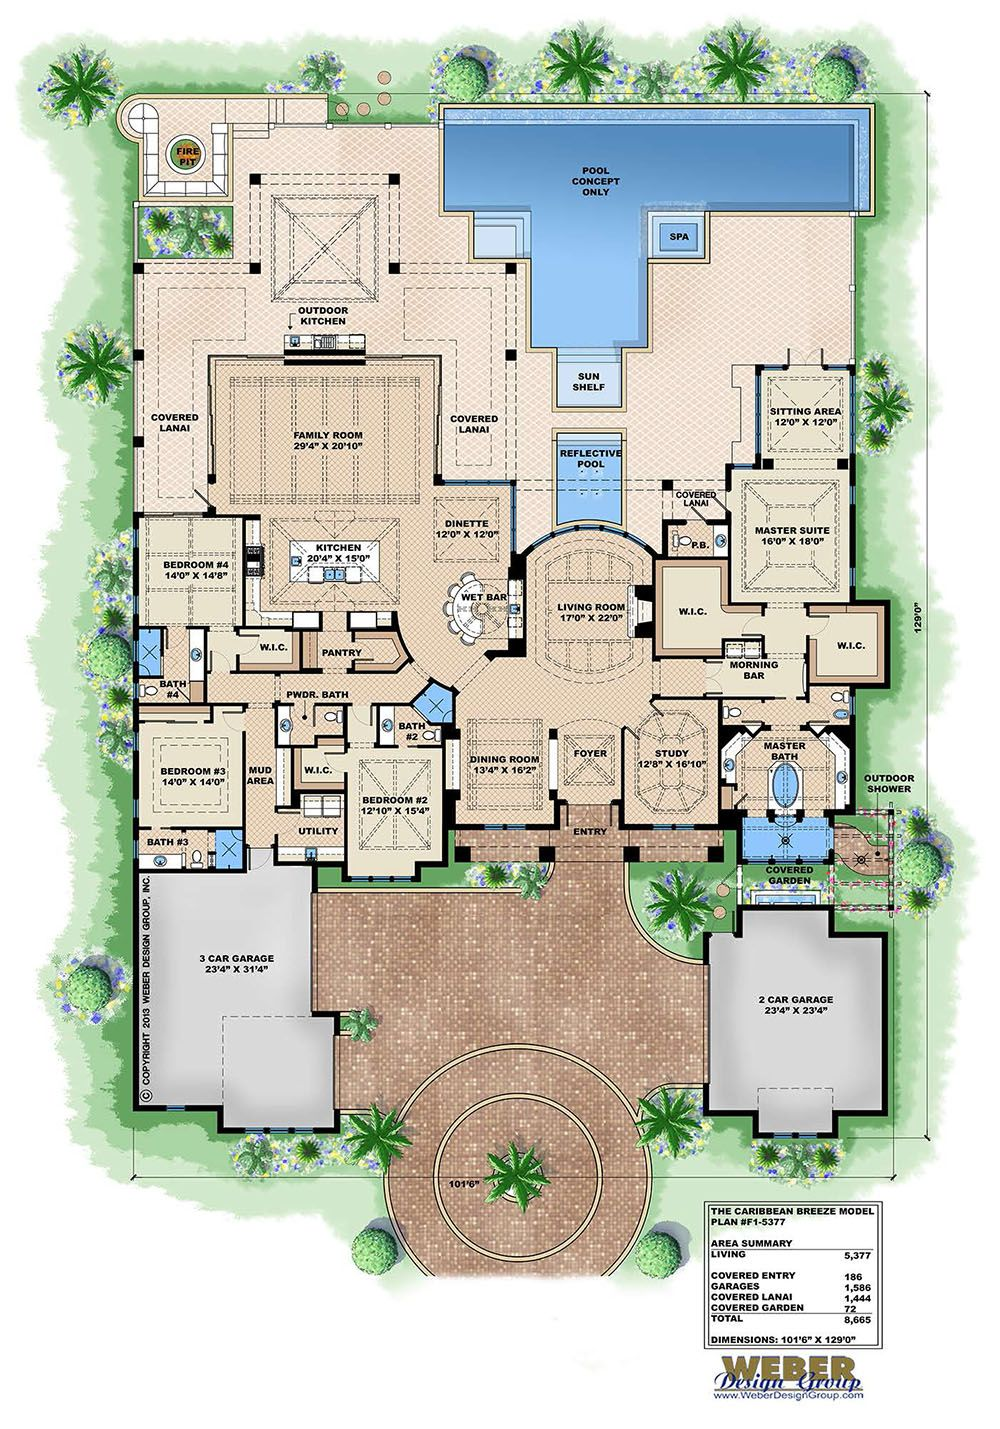 Caribbean House Plan 1 Story Contemporary Beach Home Floor Plan Dream House Plans House Floor Plans House Plans